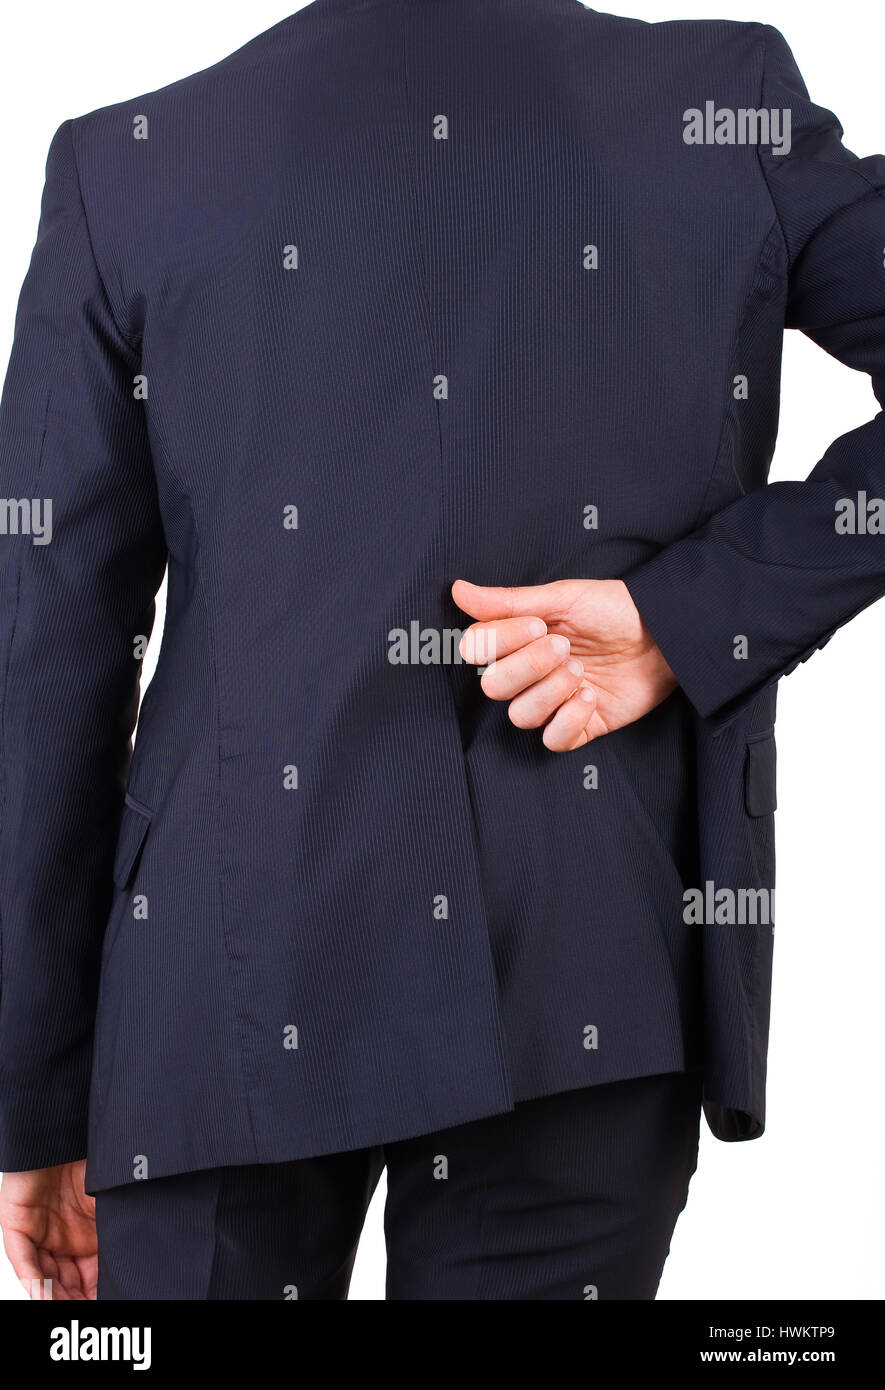 Businessman with aching back. Stock Photo